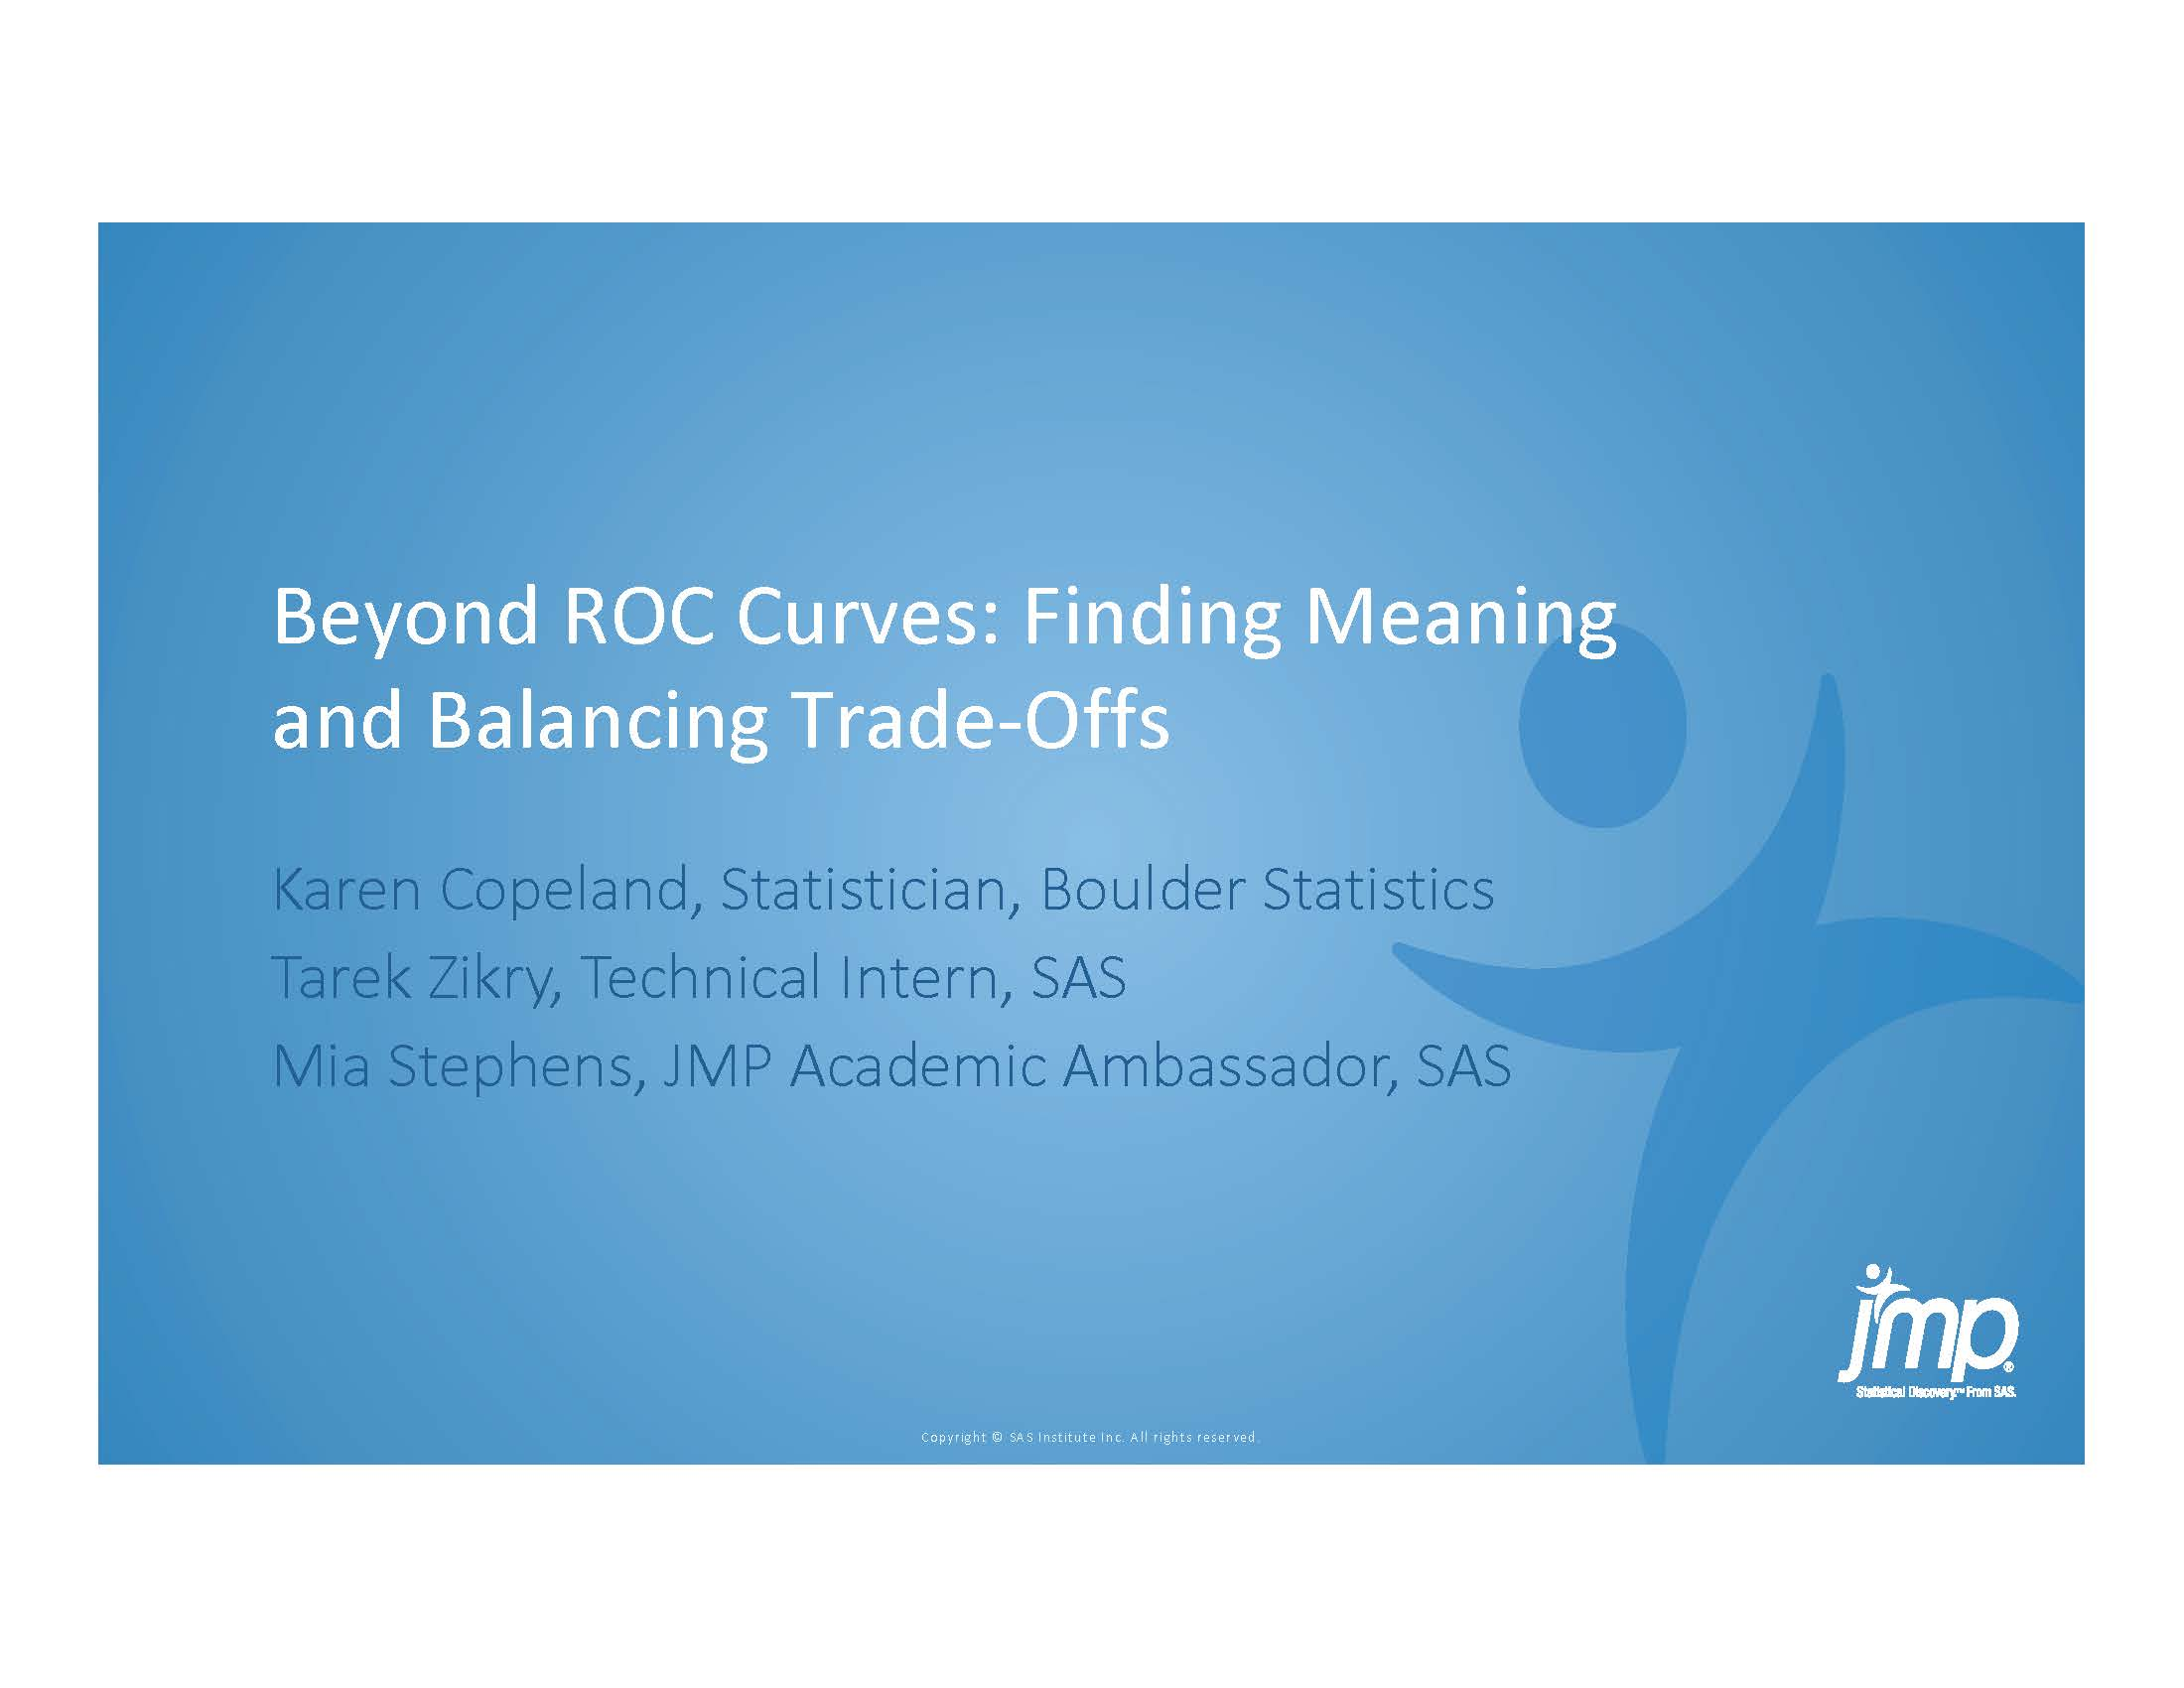 Beyond ROC Curves: Finding Meaning and Balancing Trade-Offs